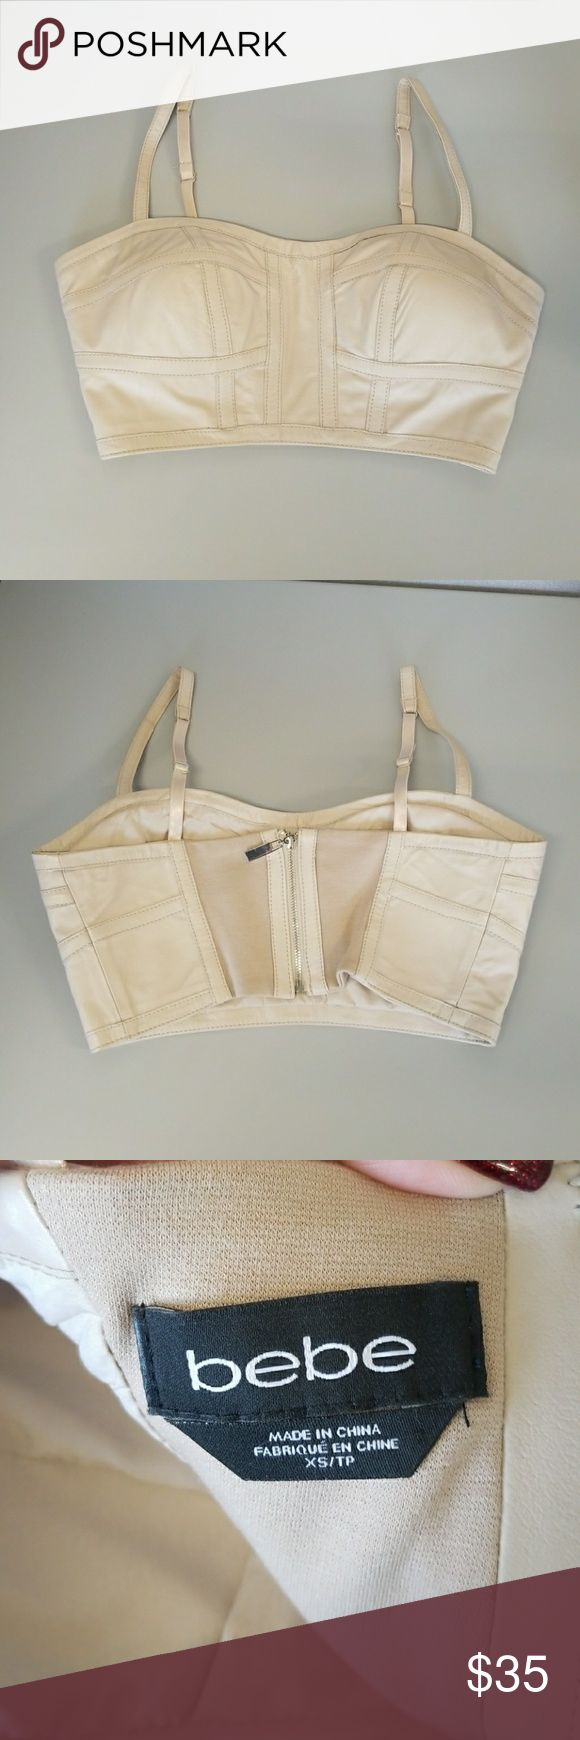 """Bebe Cropped Leather Bustier Size XS COLOR NUDE No flaws. Size XS. Leather his bebe bustier features cropped design, underwire bra and luxe soft leather. Try it with a slew of skirts and high-waisted shorts. 100% leather Center back to hem: 5"""" (13 cm) Spandex lining Adjustable straps Bra cup size B for XXS and XS bebe Tops Crop Tops"""